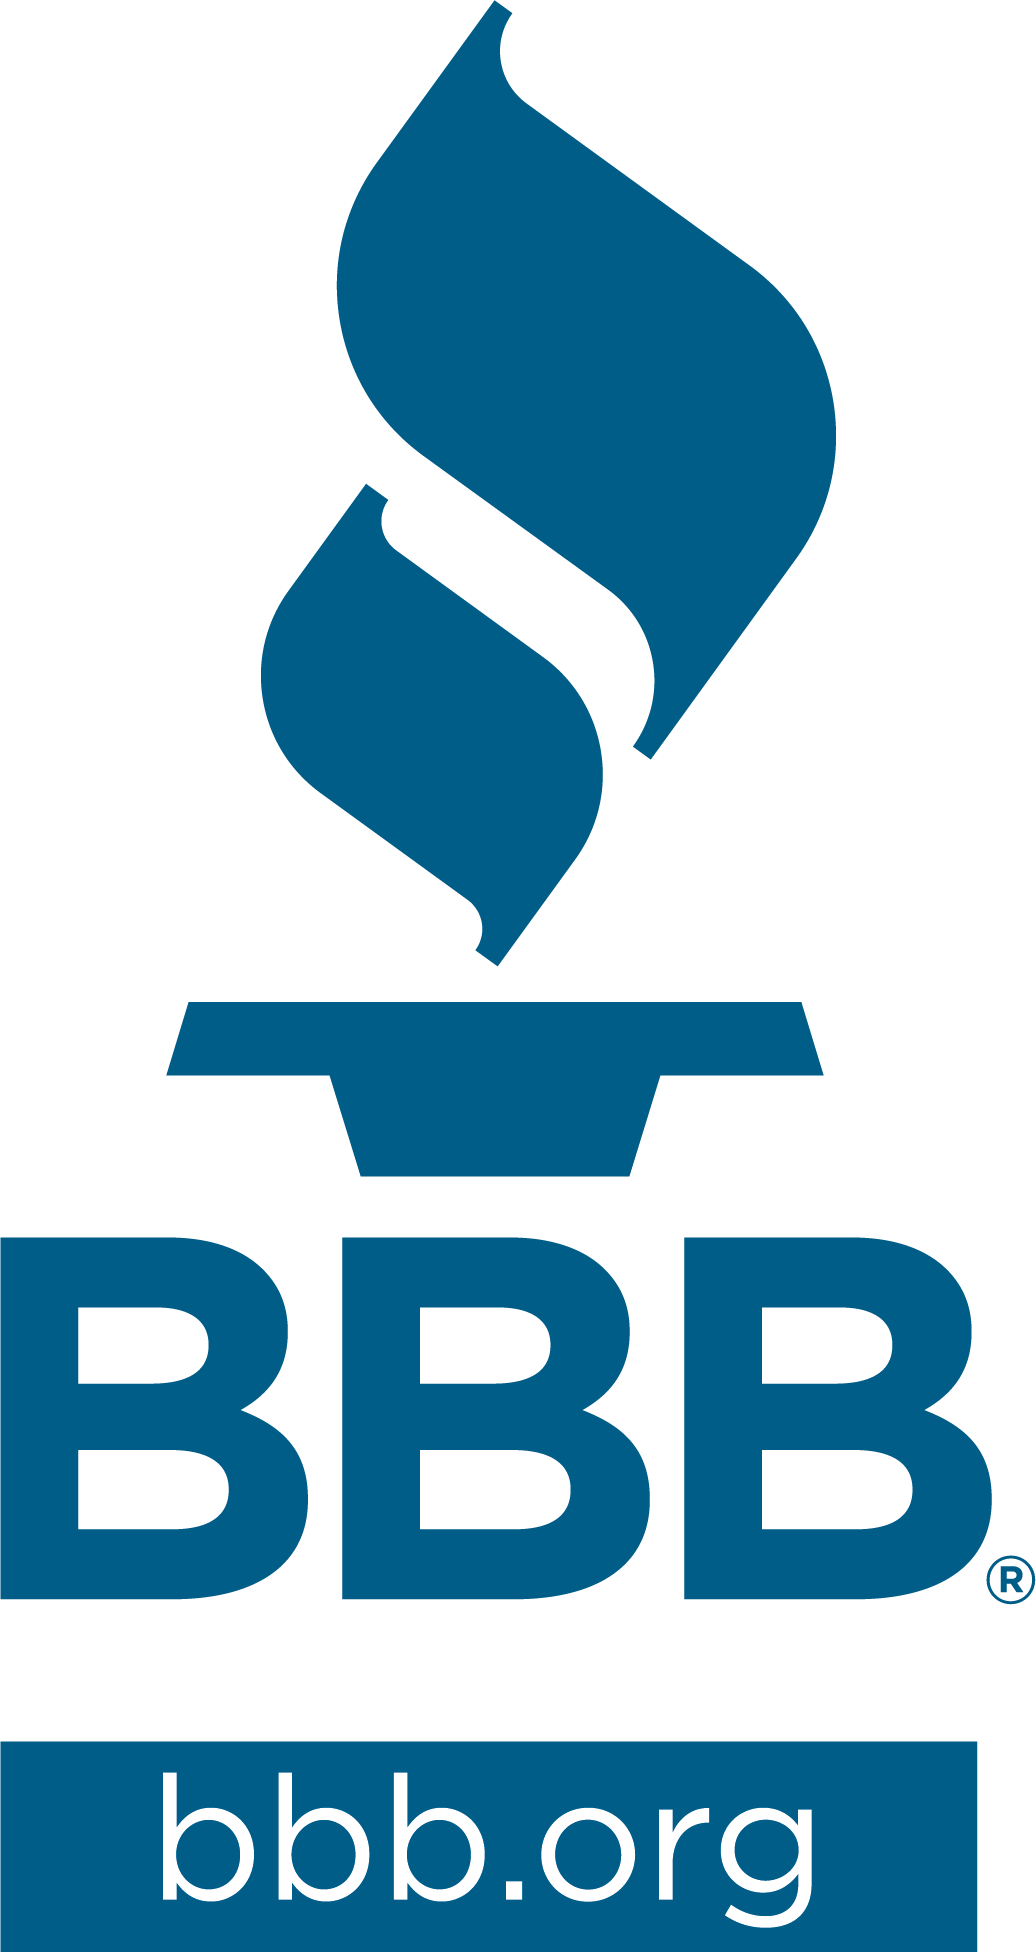 bbb_web_7469-us.png